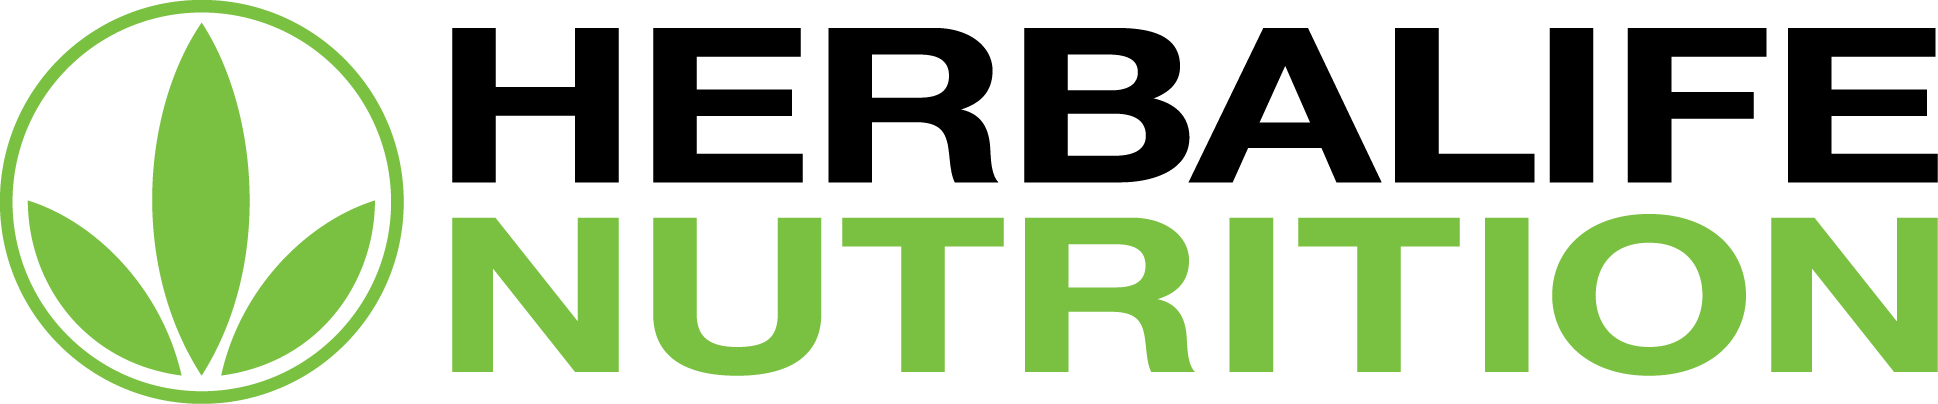 file:herbalife nutrition logo 2016 - wikimedia commons